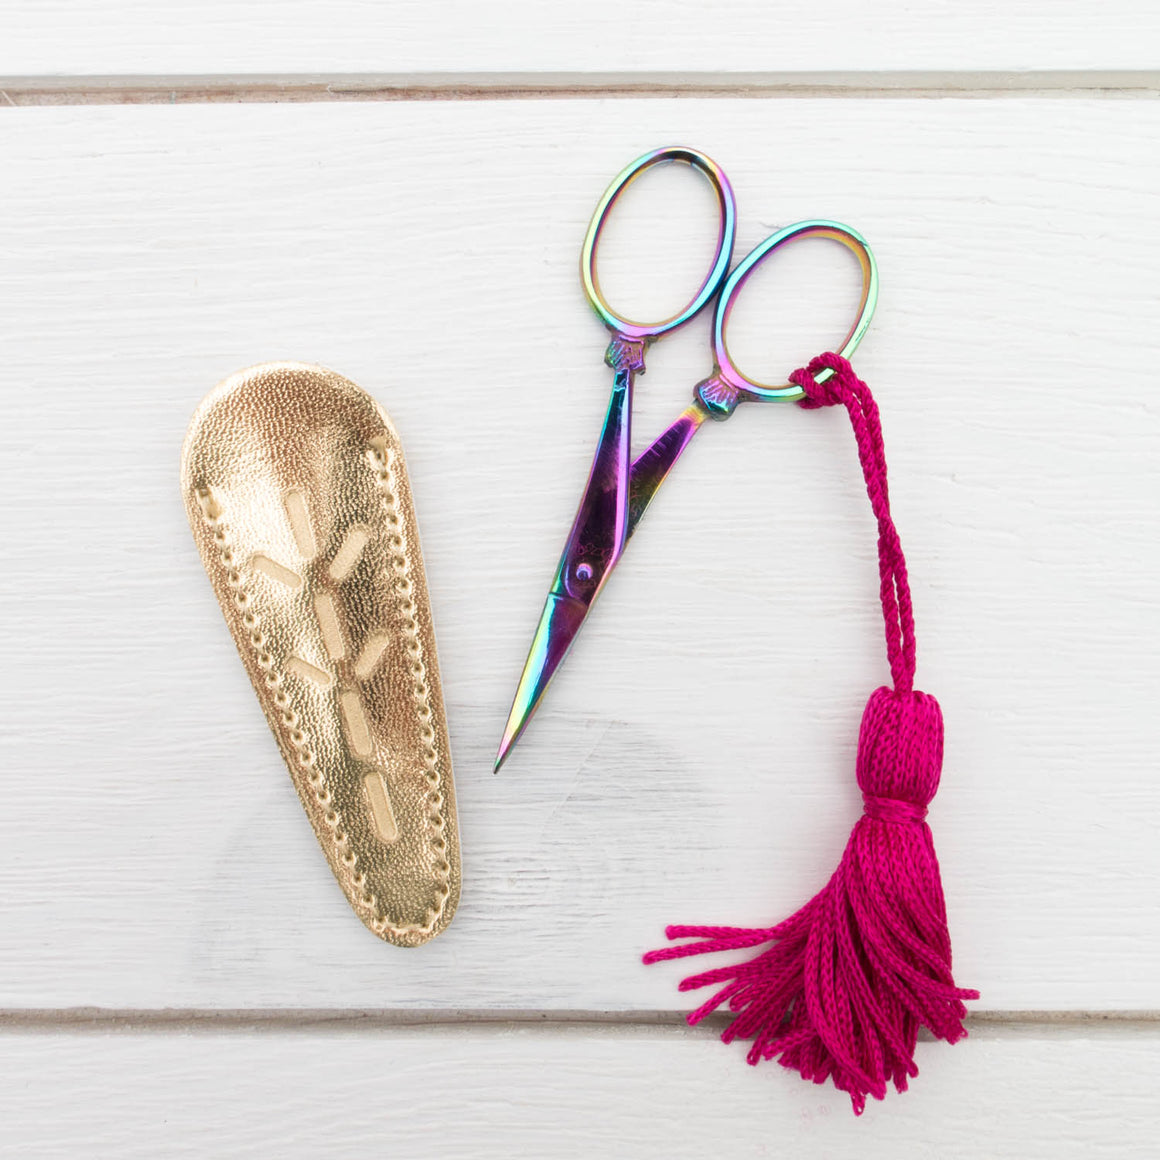 Prismatic Rainbow Embroidery Scissors